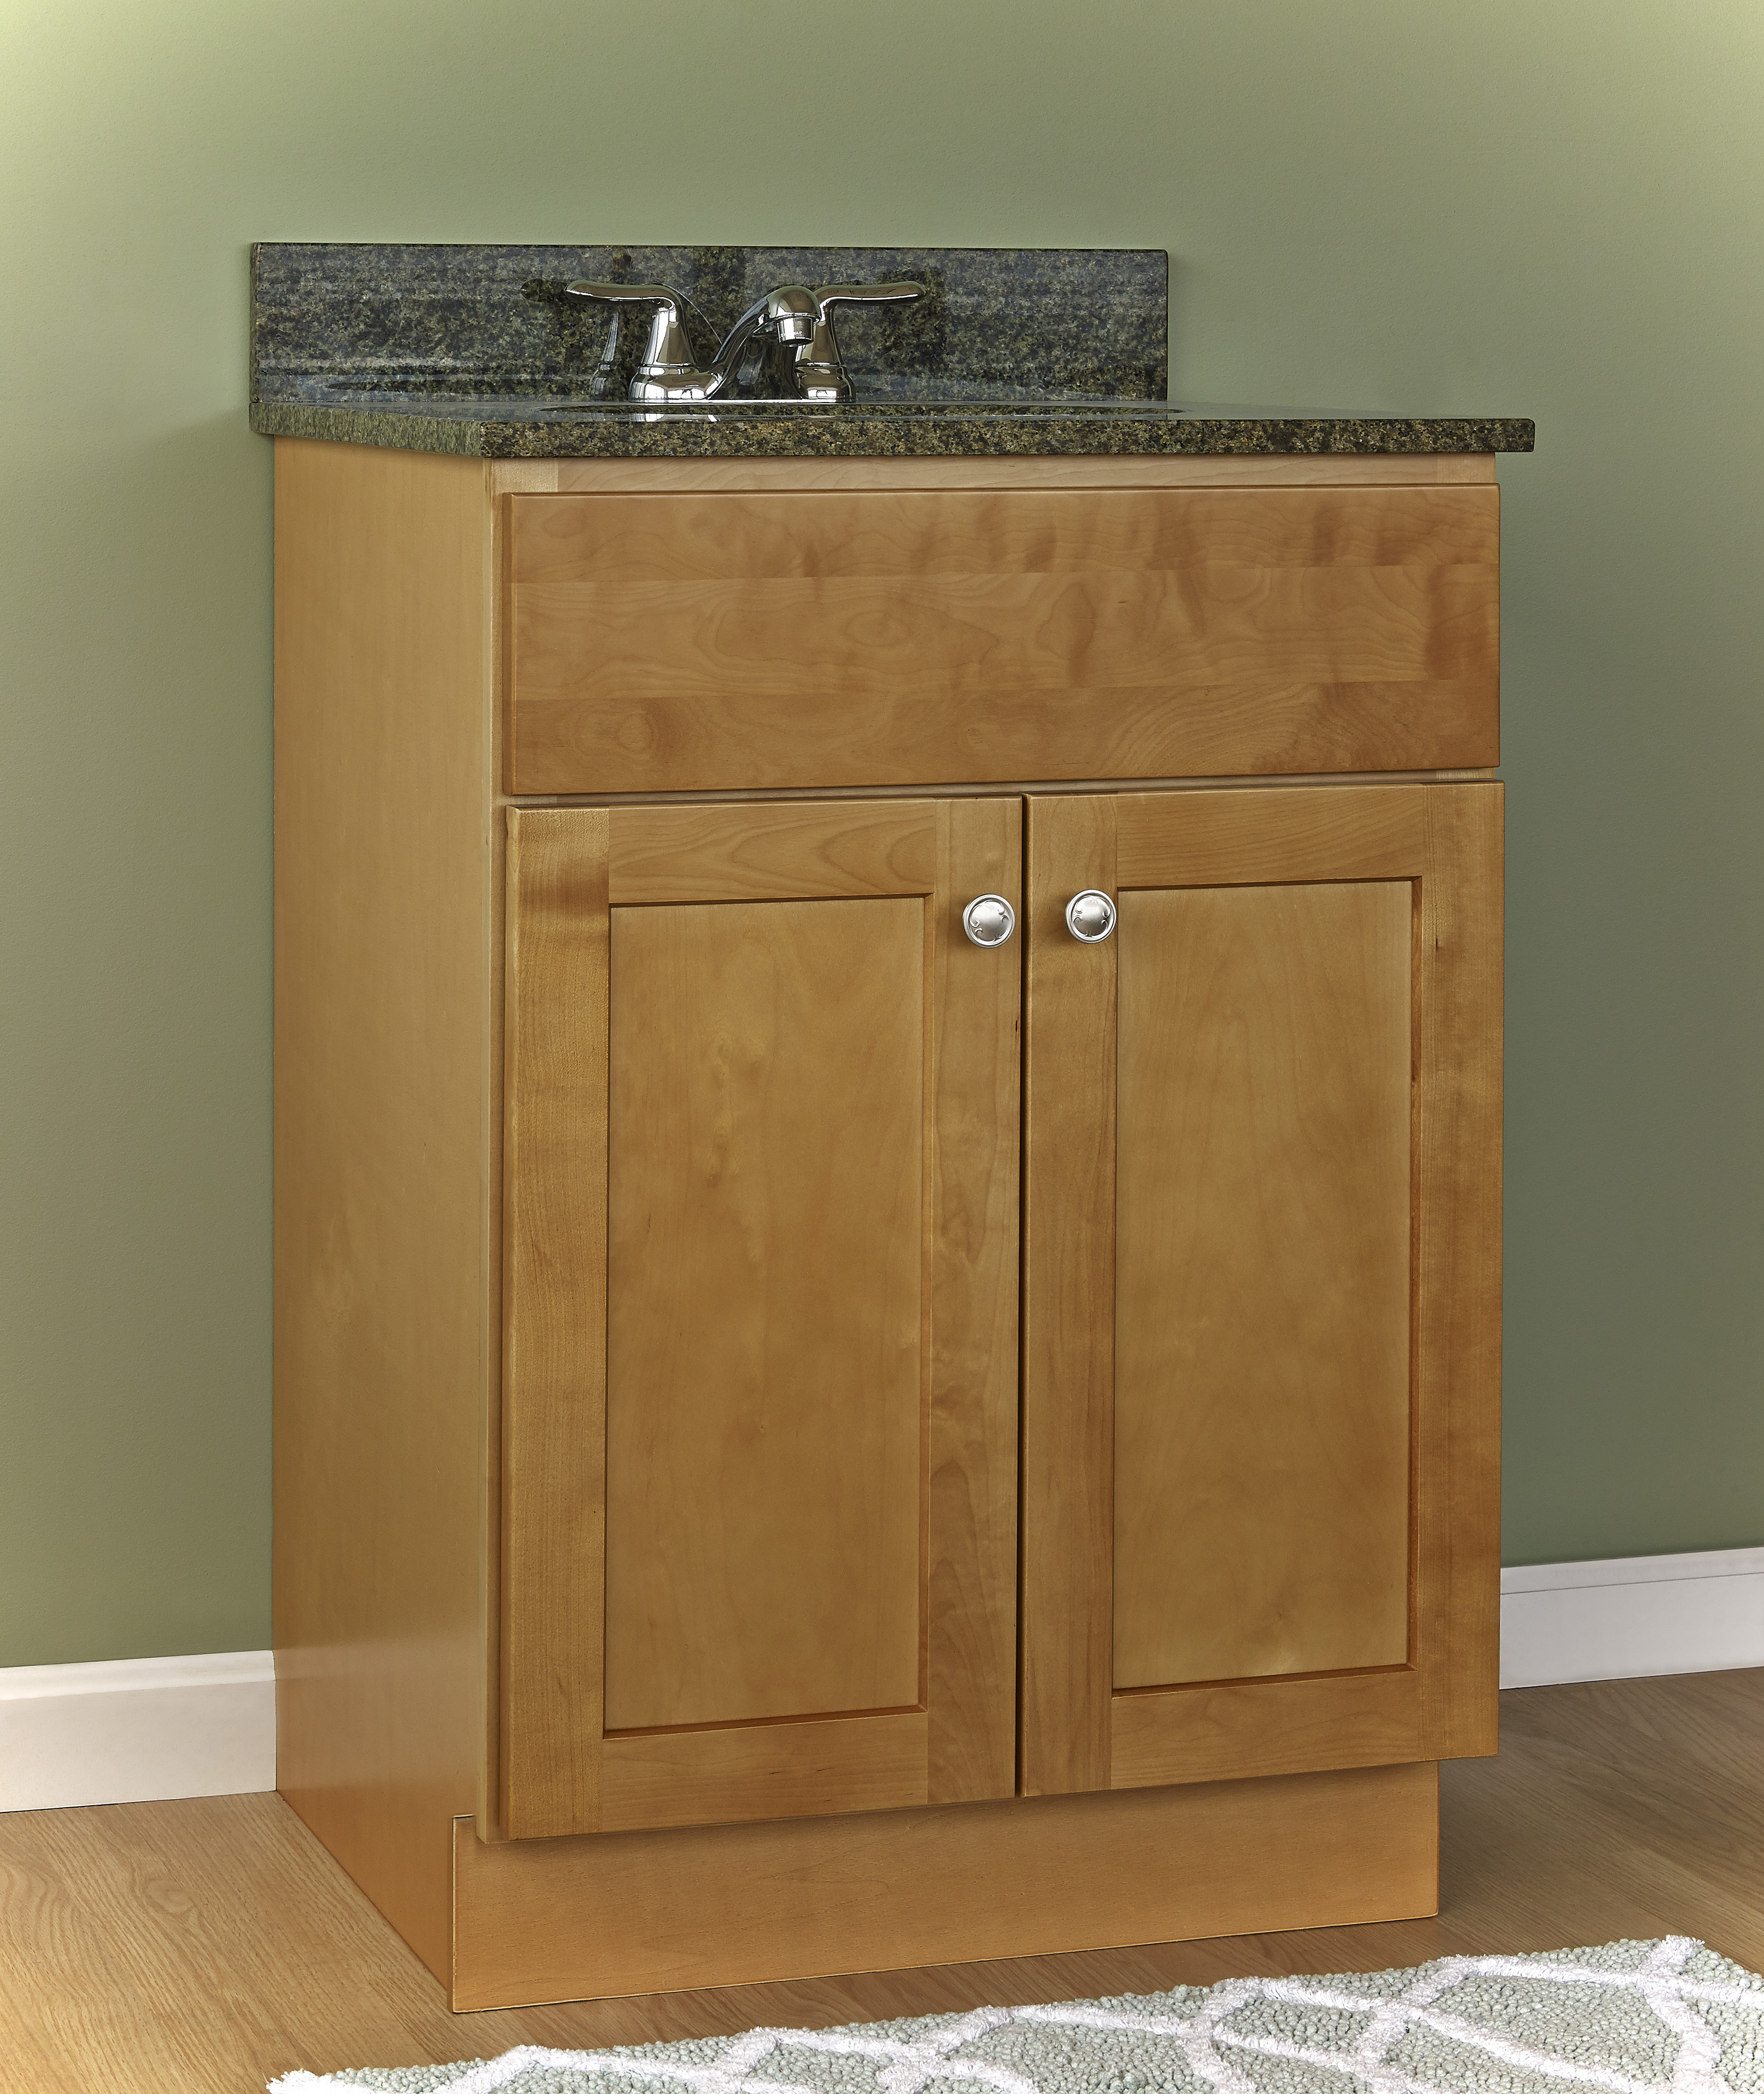 Ipax cabinets direct amesbury golden for Cabinets direct